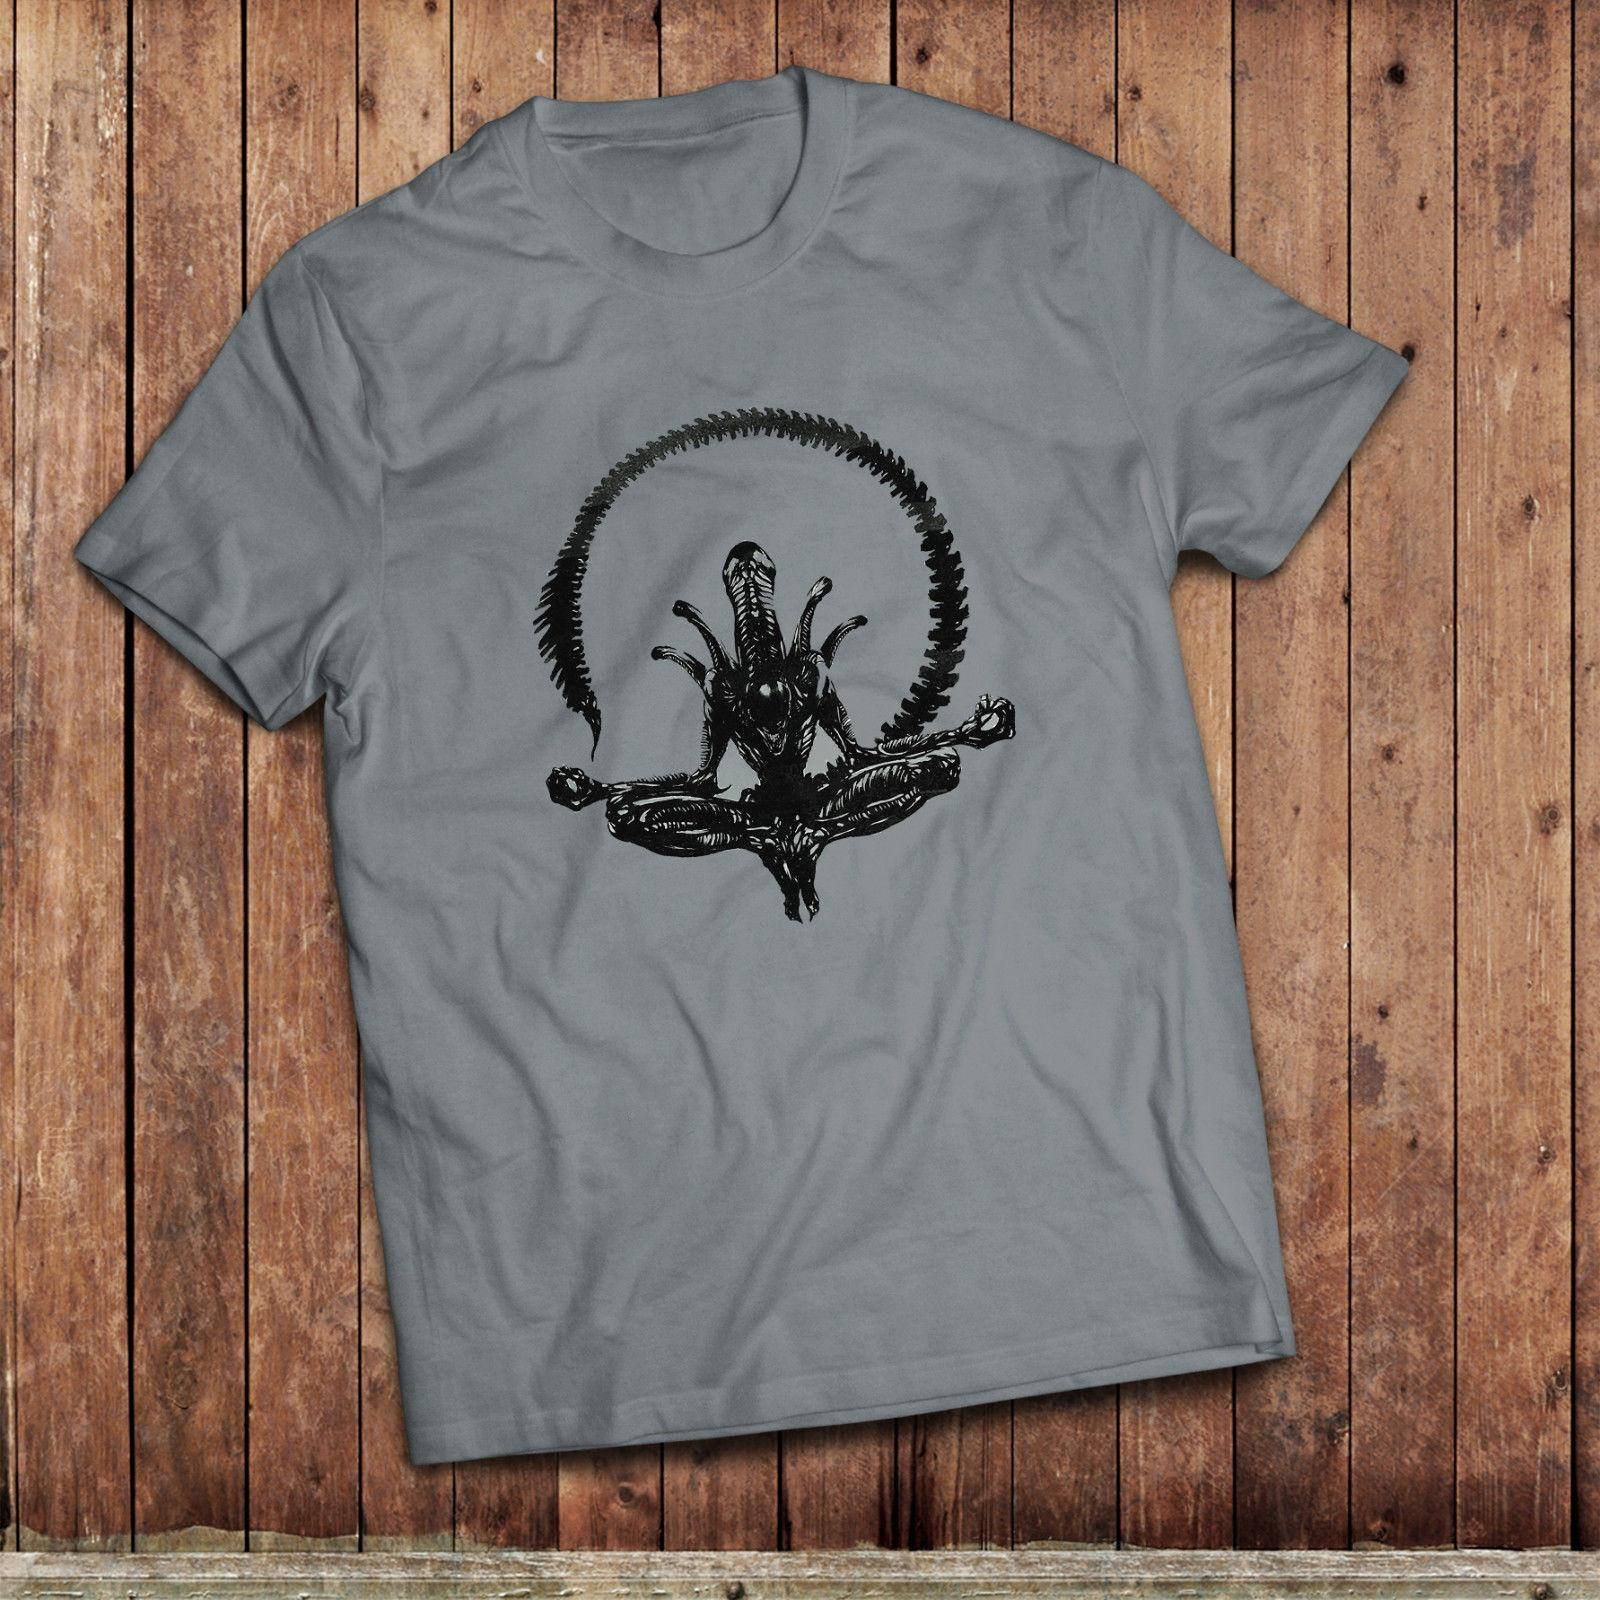 Alien Yoga T Shirt Xenomorph Tee Inspired By The Classic Movie Funny Unisex Casual Tee Gift Funny T Shirt Sites Crazy T Shirt Sayings From Trendsspace 12 96 Dhgate Com